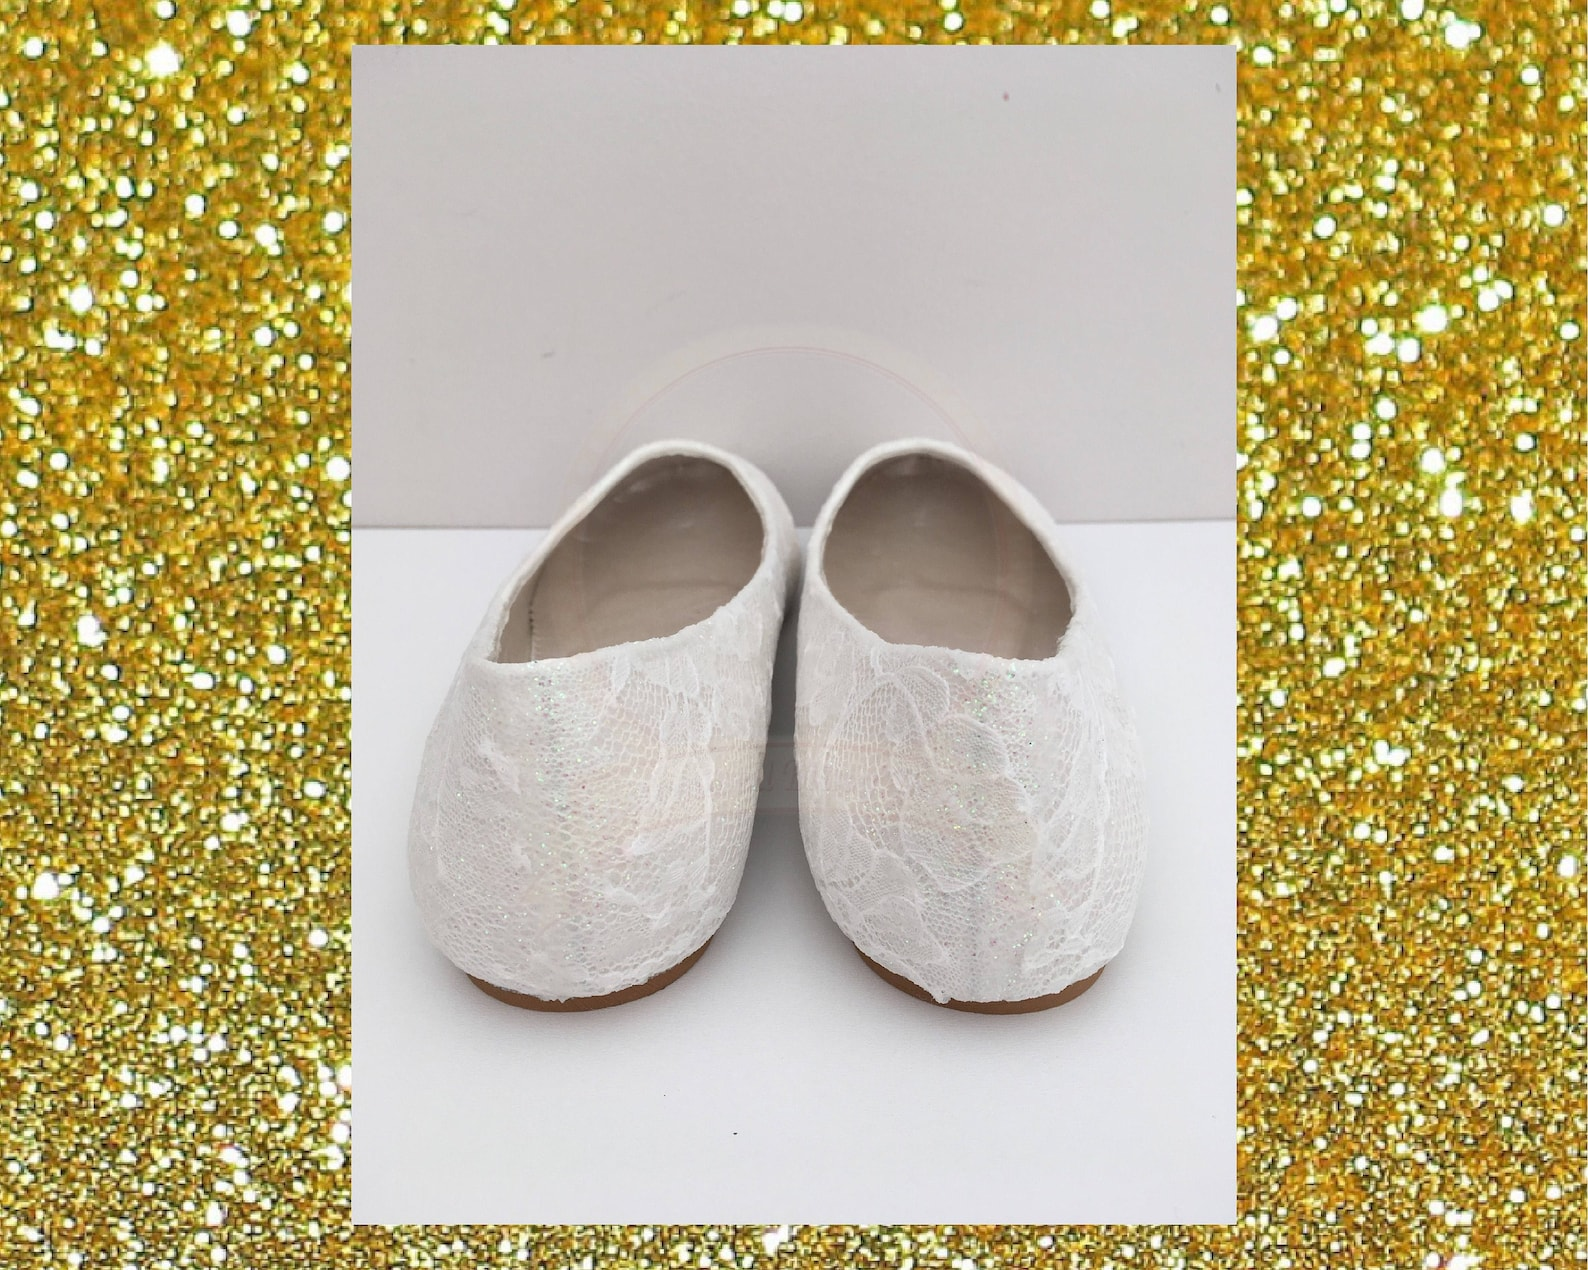 white lace bridal shoes, lace flat shoes, white bridal shoes, flat bridal shoes, flat wedding shoes, ballet flats, flat shoes fo